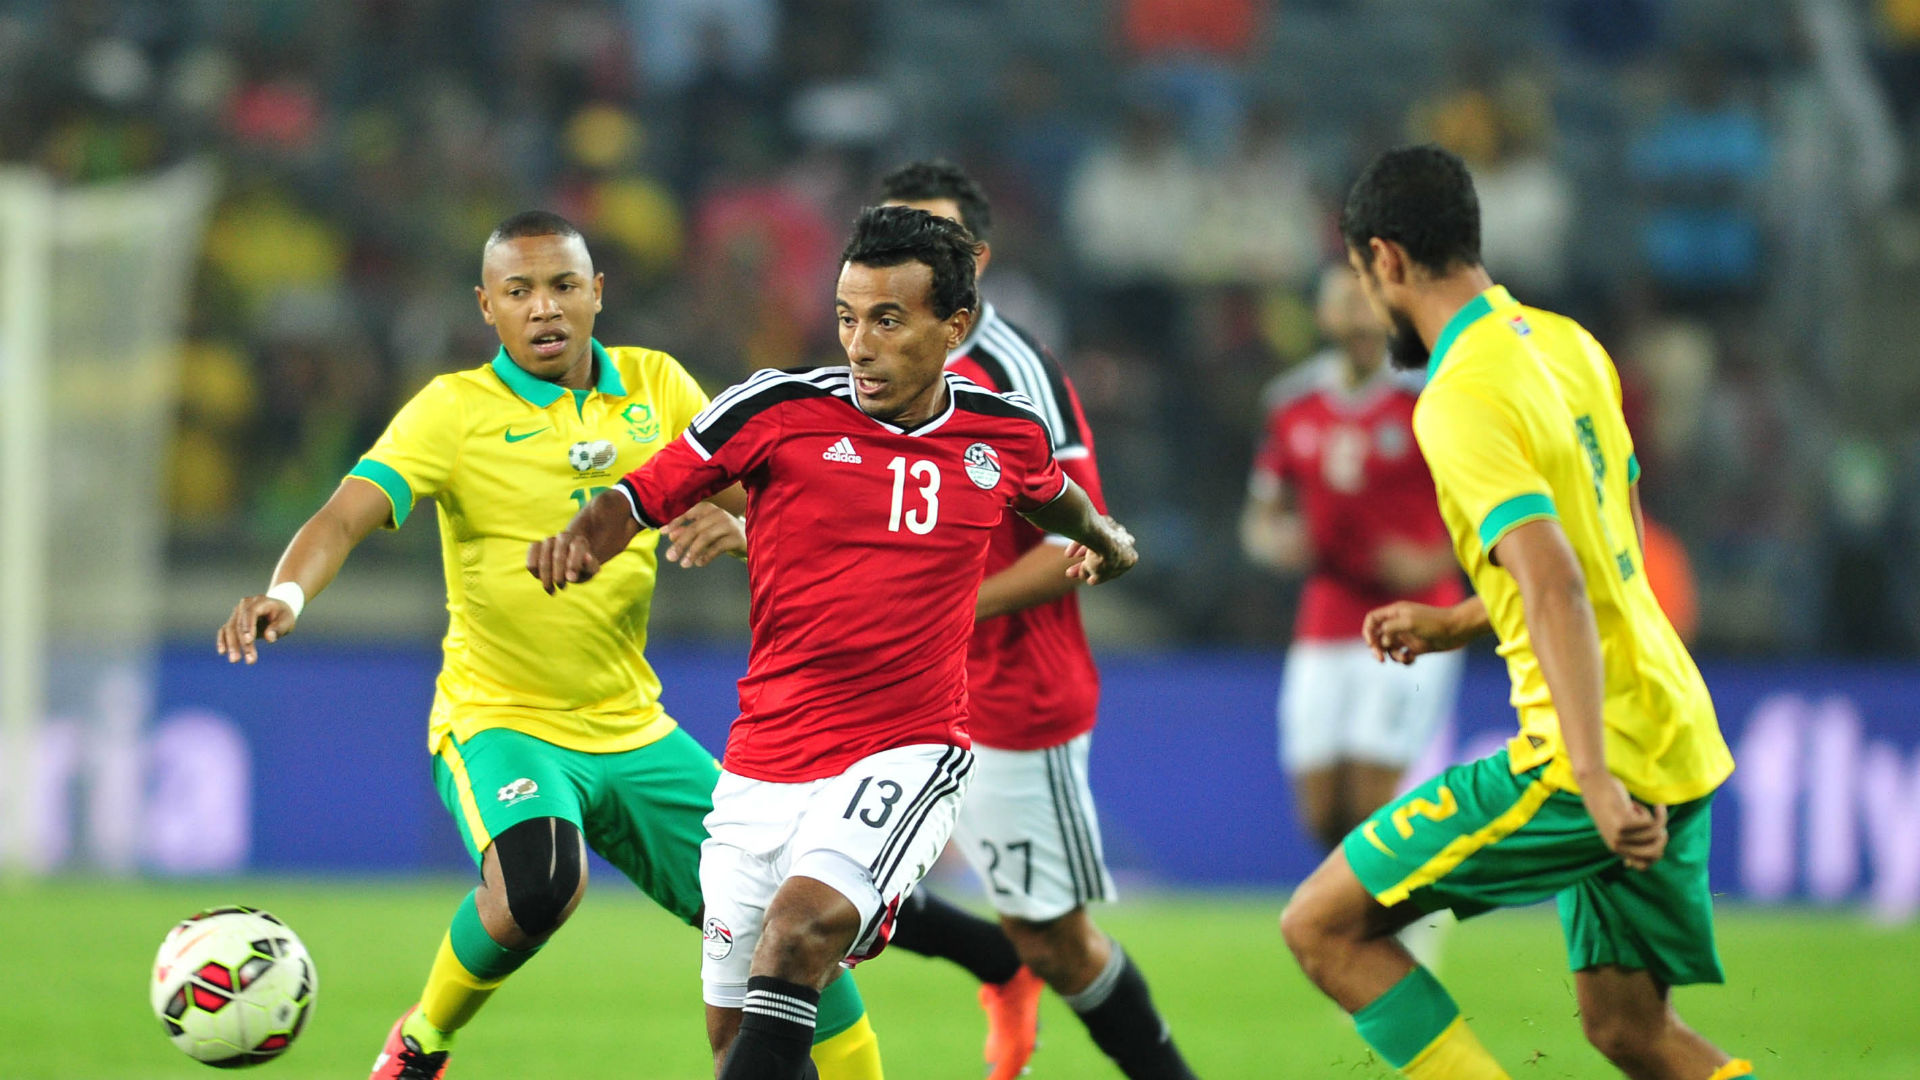 Renard to face former team Ivory Coast at African Cup